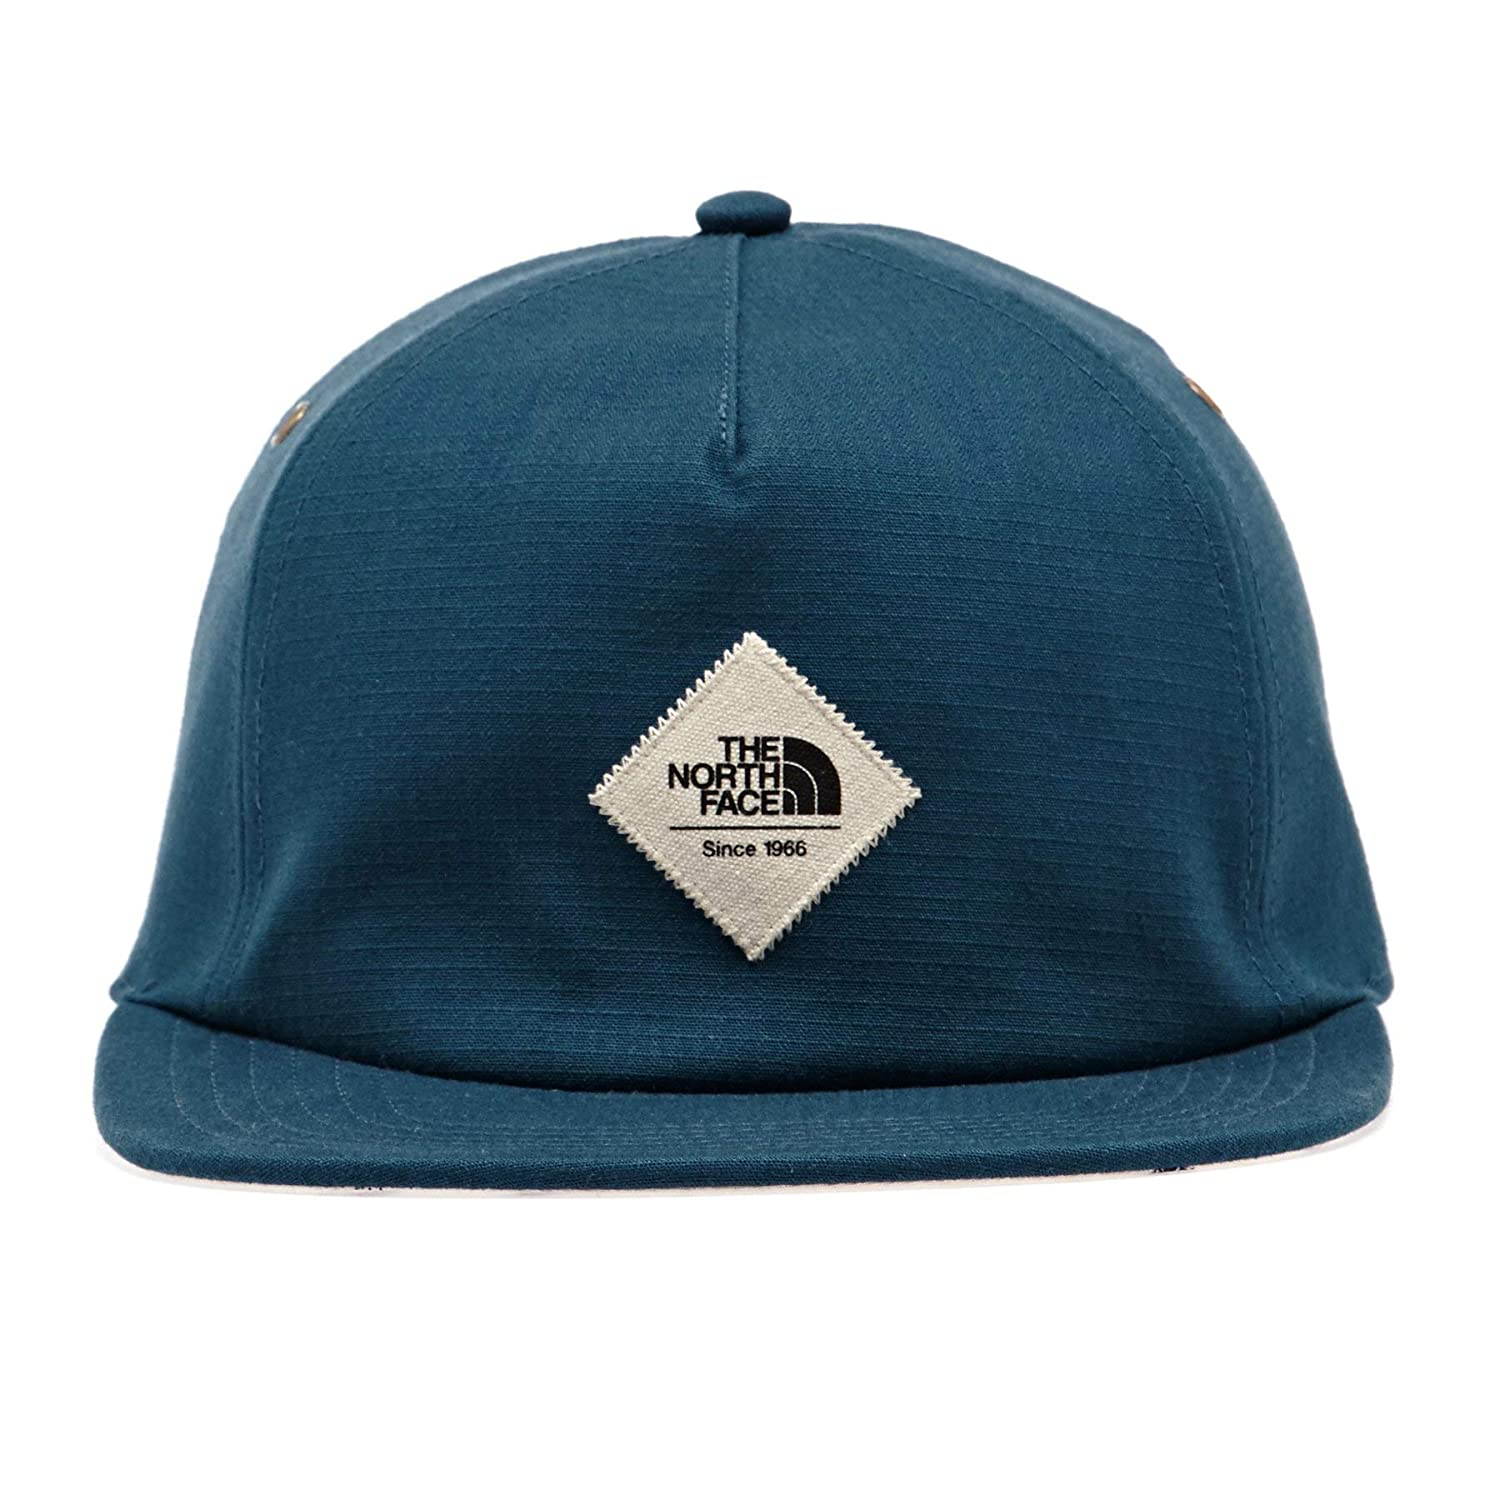 The North Face Juniper Crush Cap Gorra Plegable, Hombre, Blue Wing Teal, One Size: Amazon.es: Deportes y aire libre